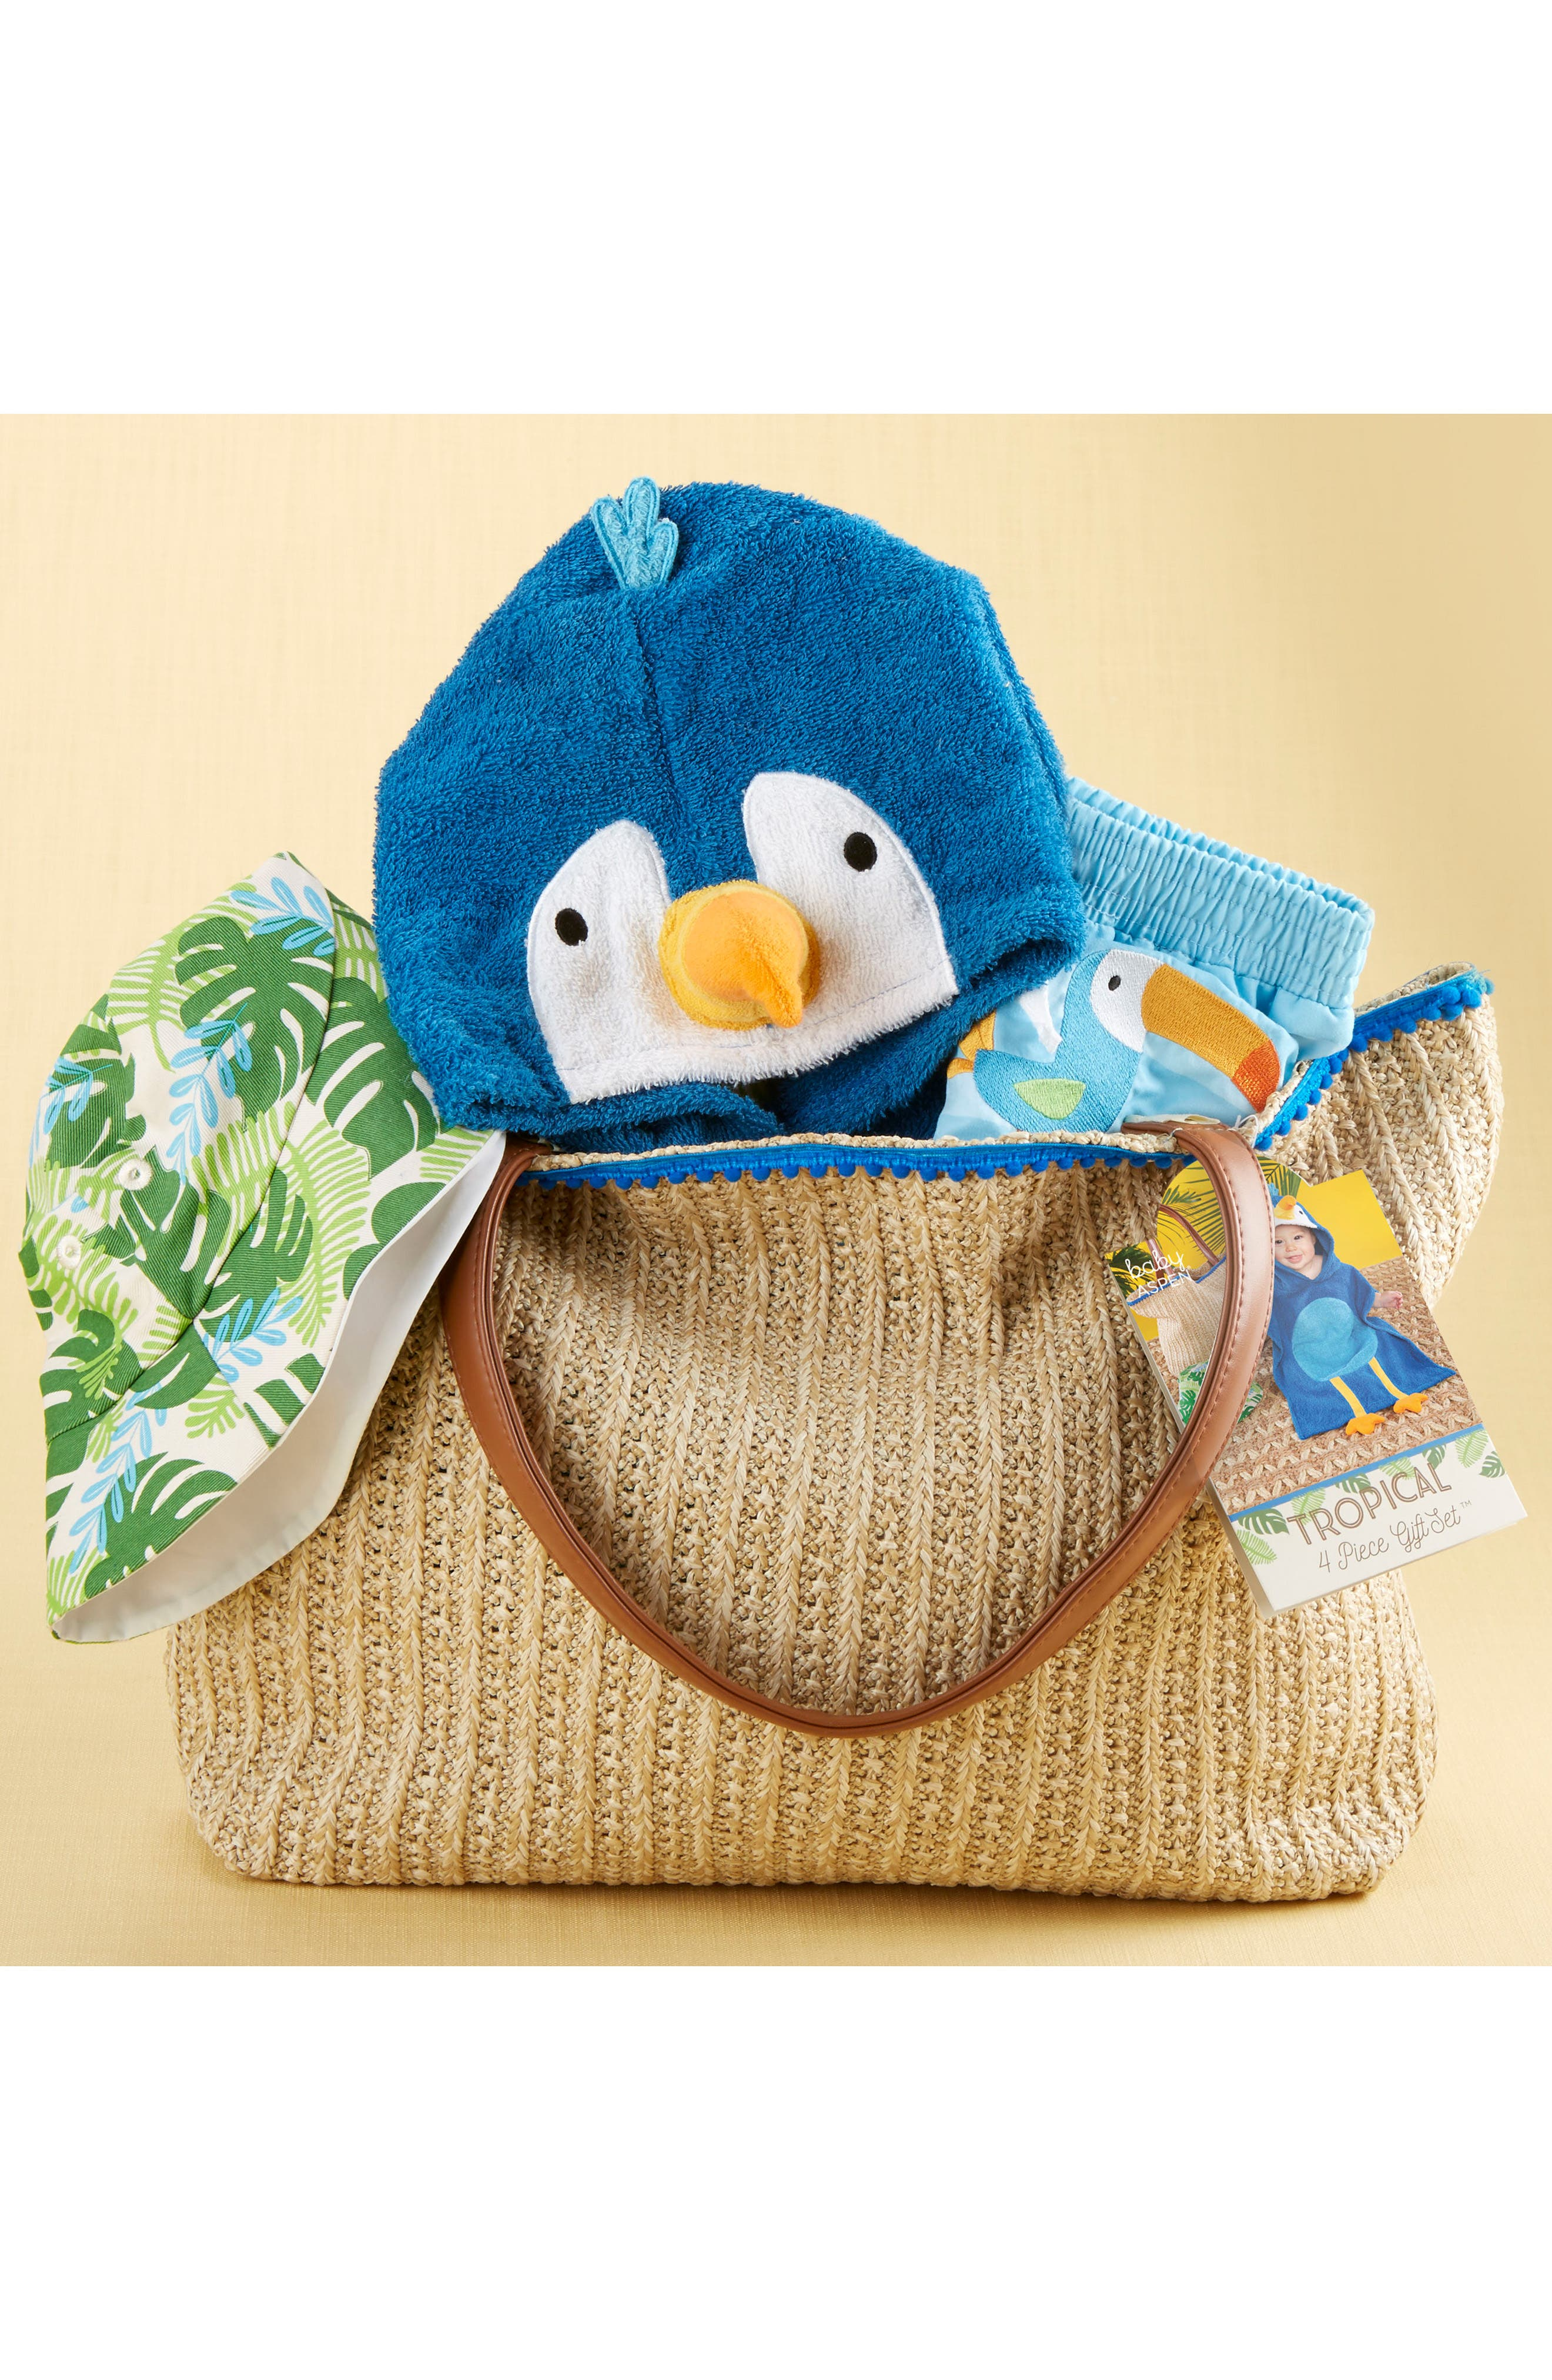 Tropical Hooded Towel, Swimsuit, Sun Hat & Tote Set,                             Alternate thumbnail 3, color,                             BLUE/ GREY/ WHITE/ BROWN